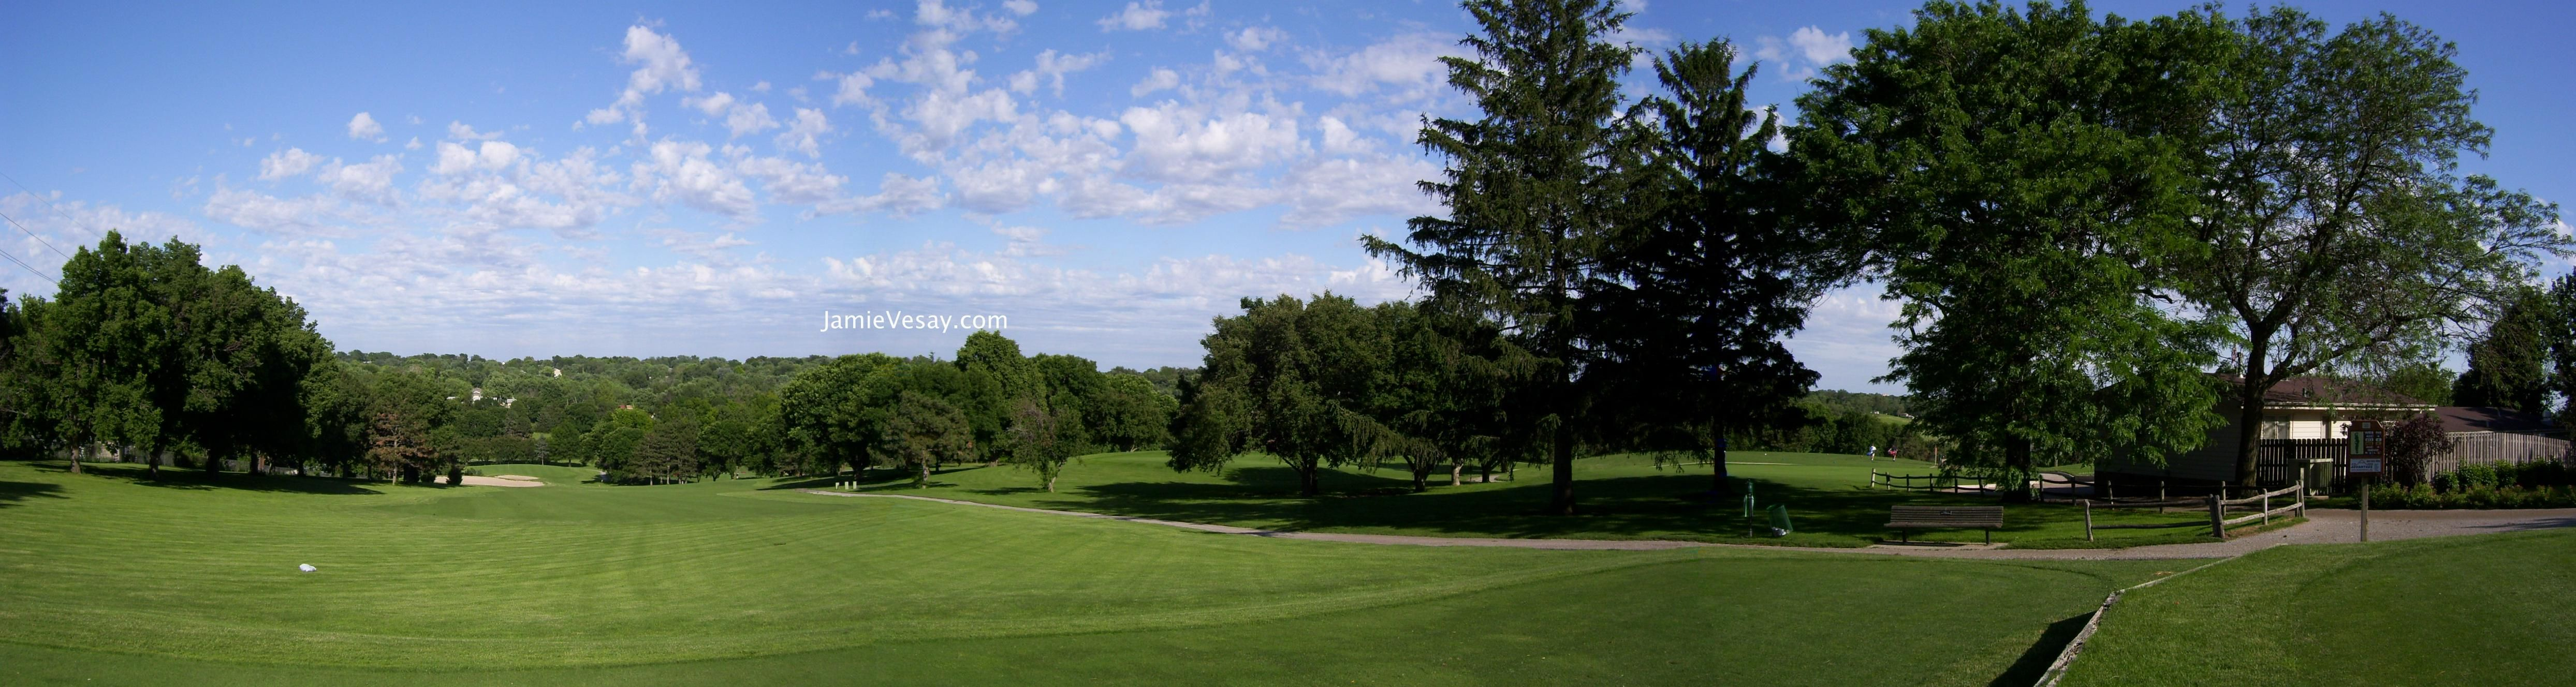 Benson Park Golf Course Omaha, NE Panoramic View from #10 ...